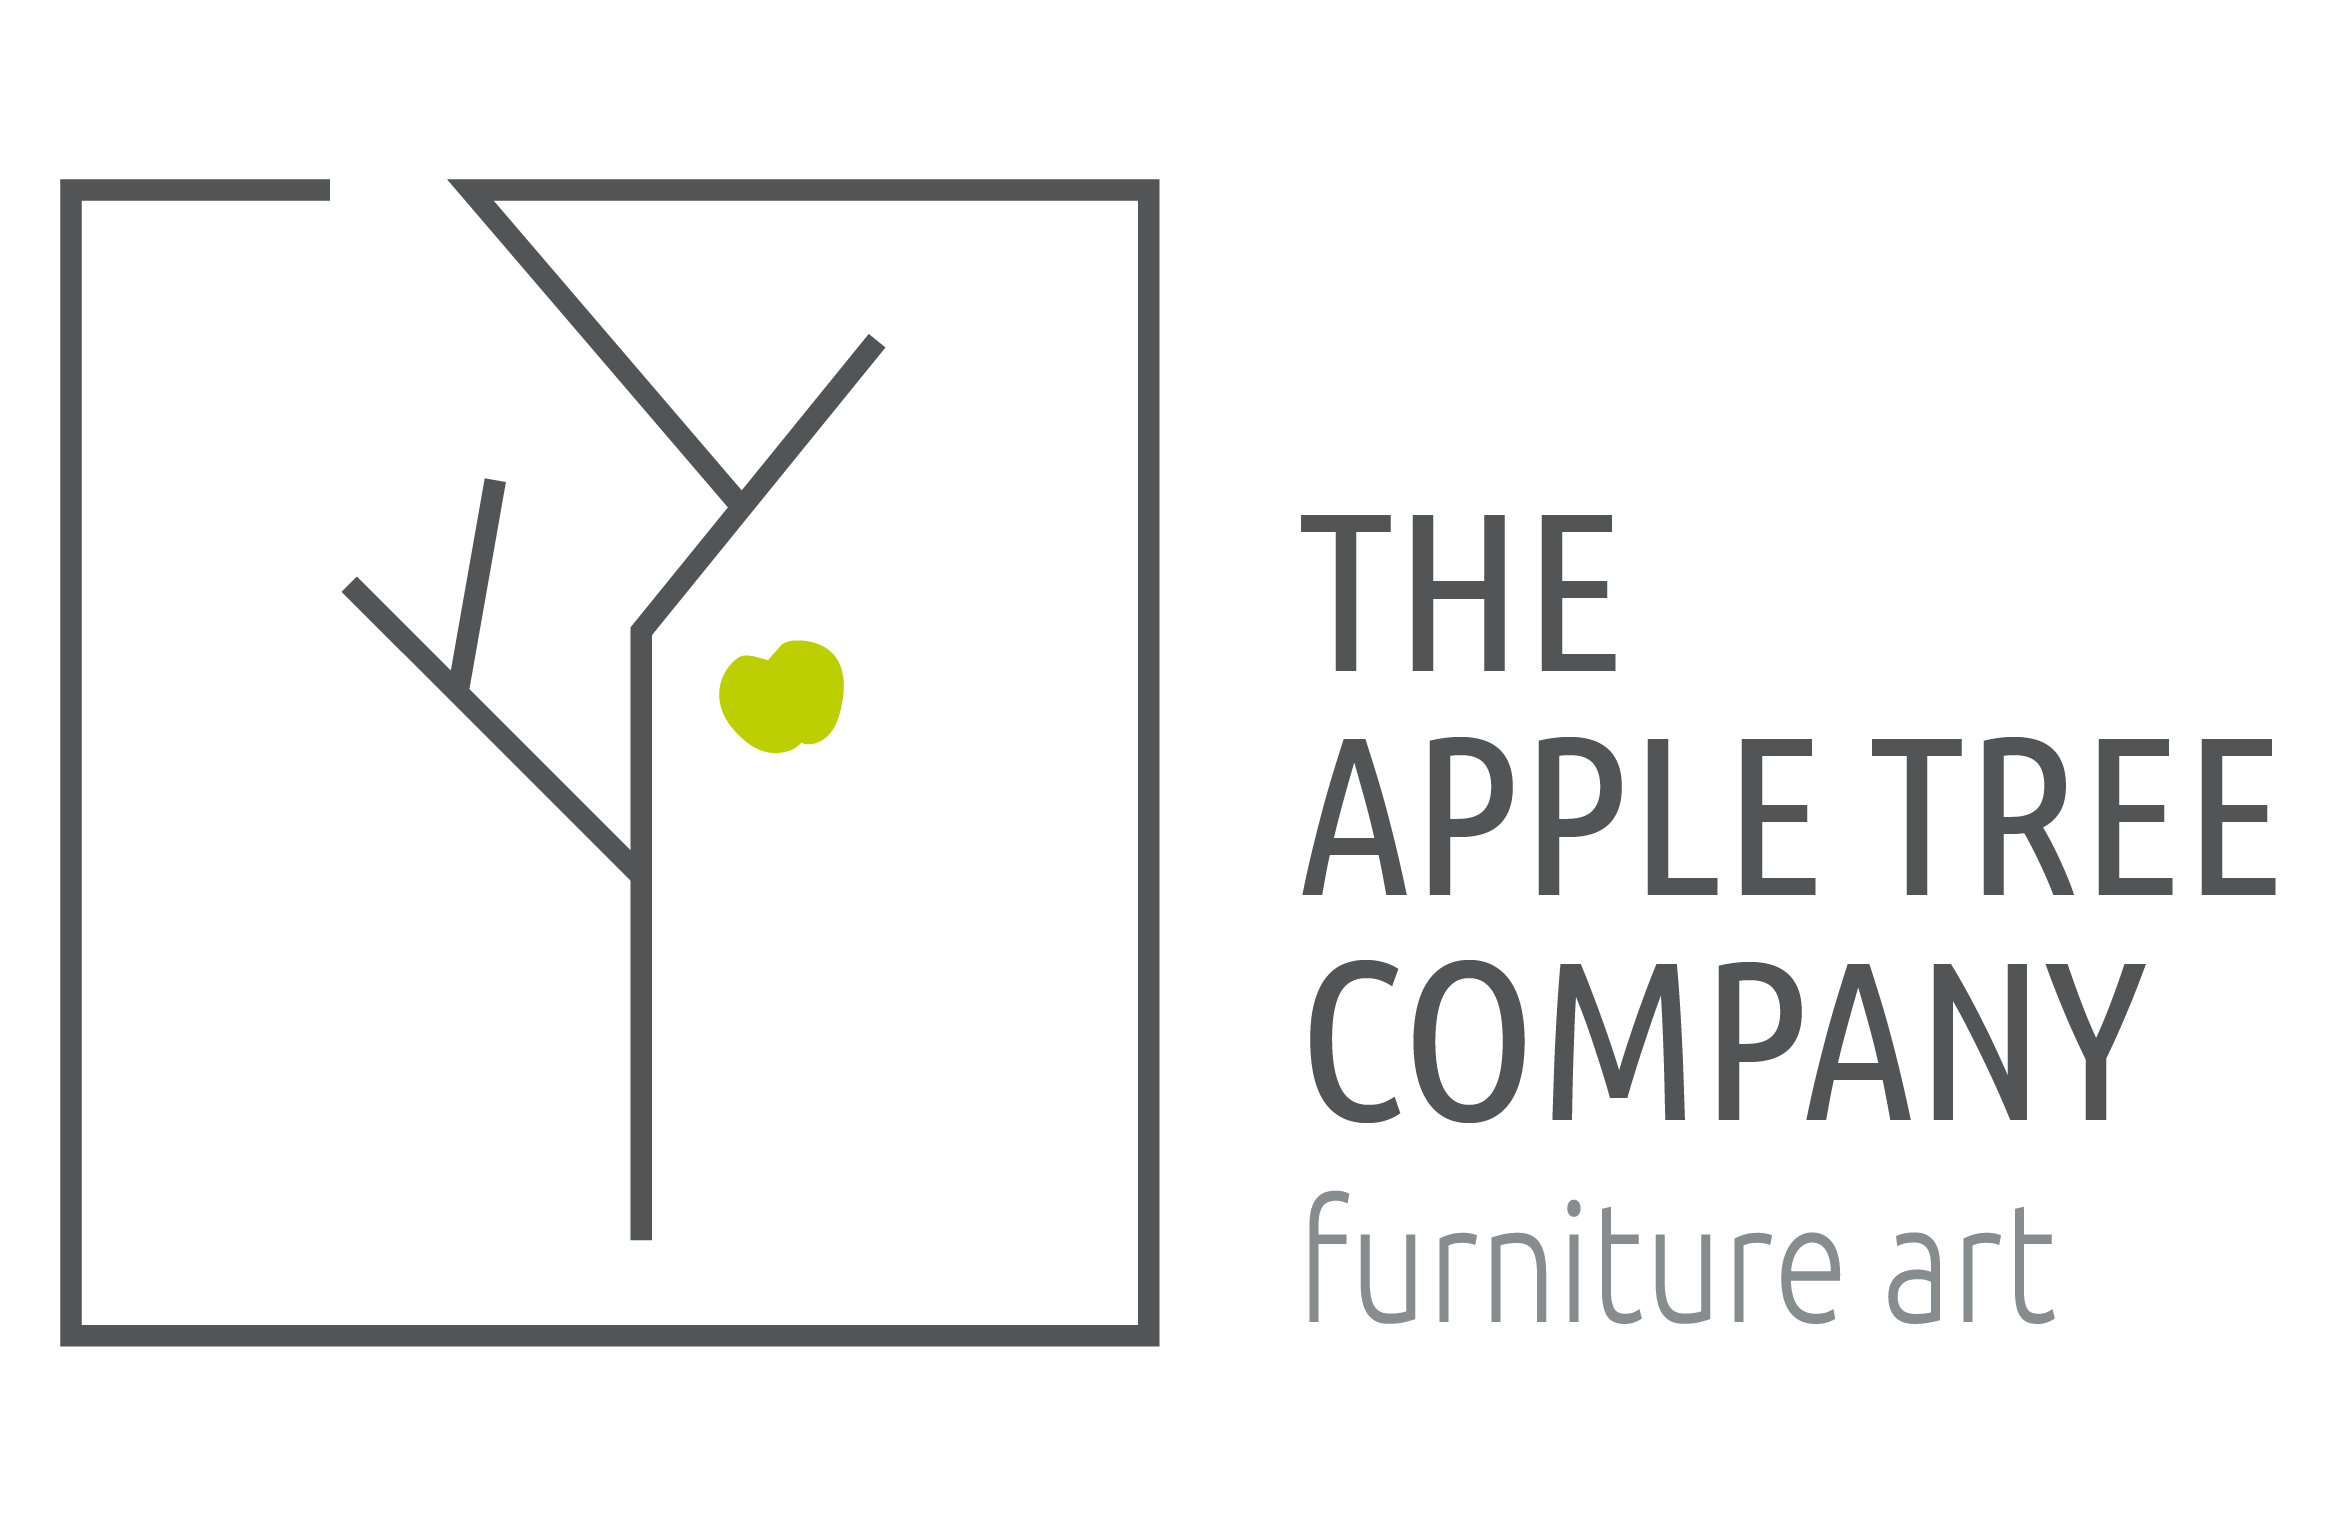 The Apple Tree Company